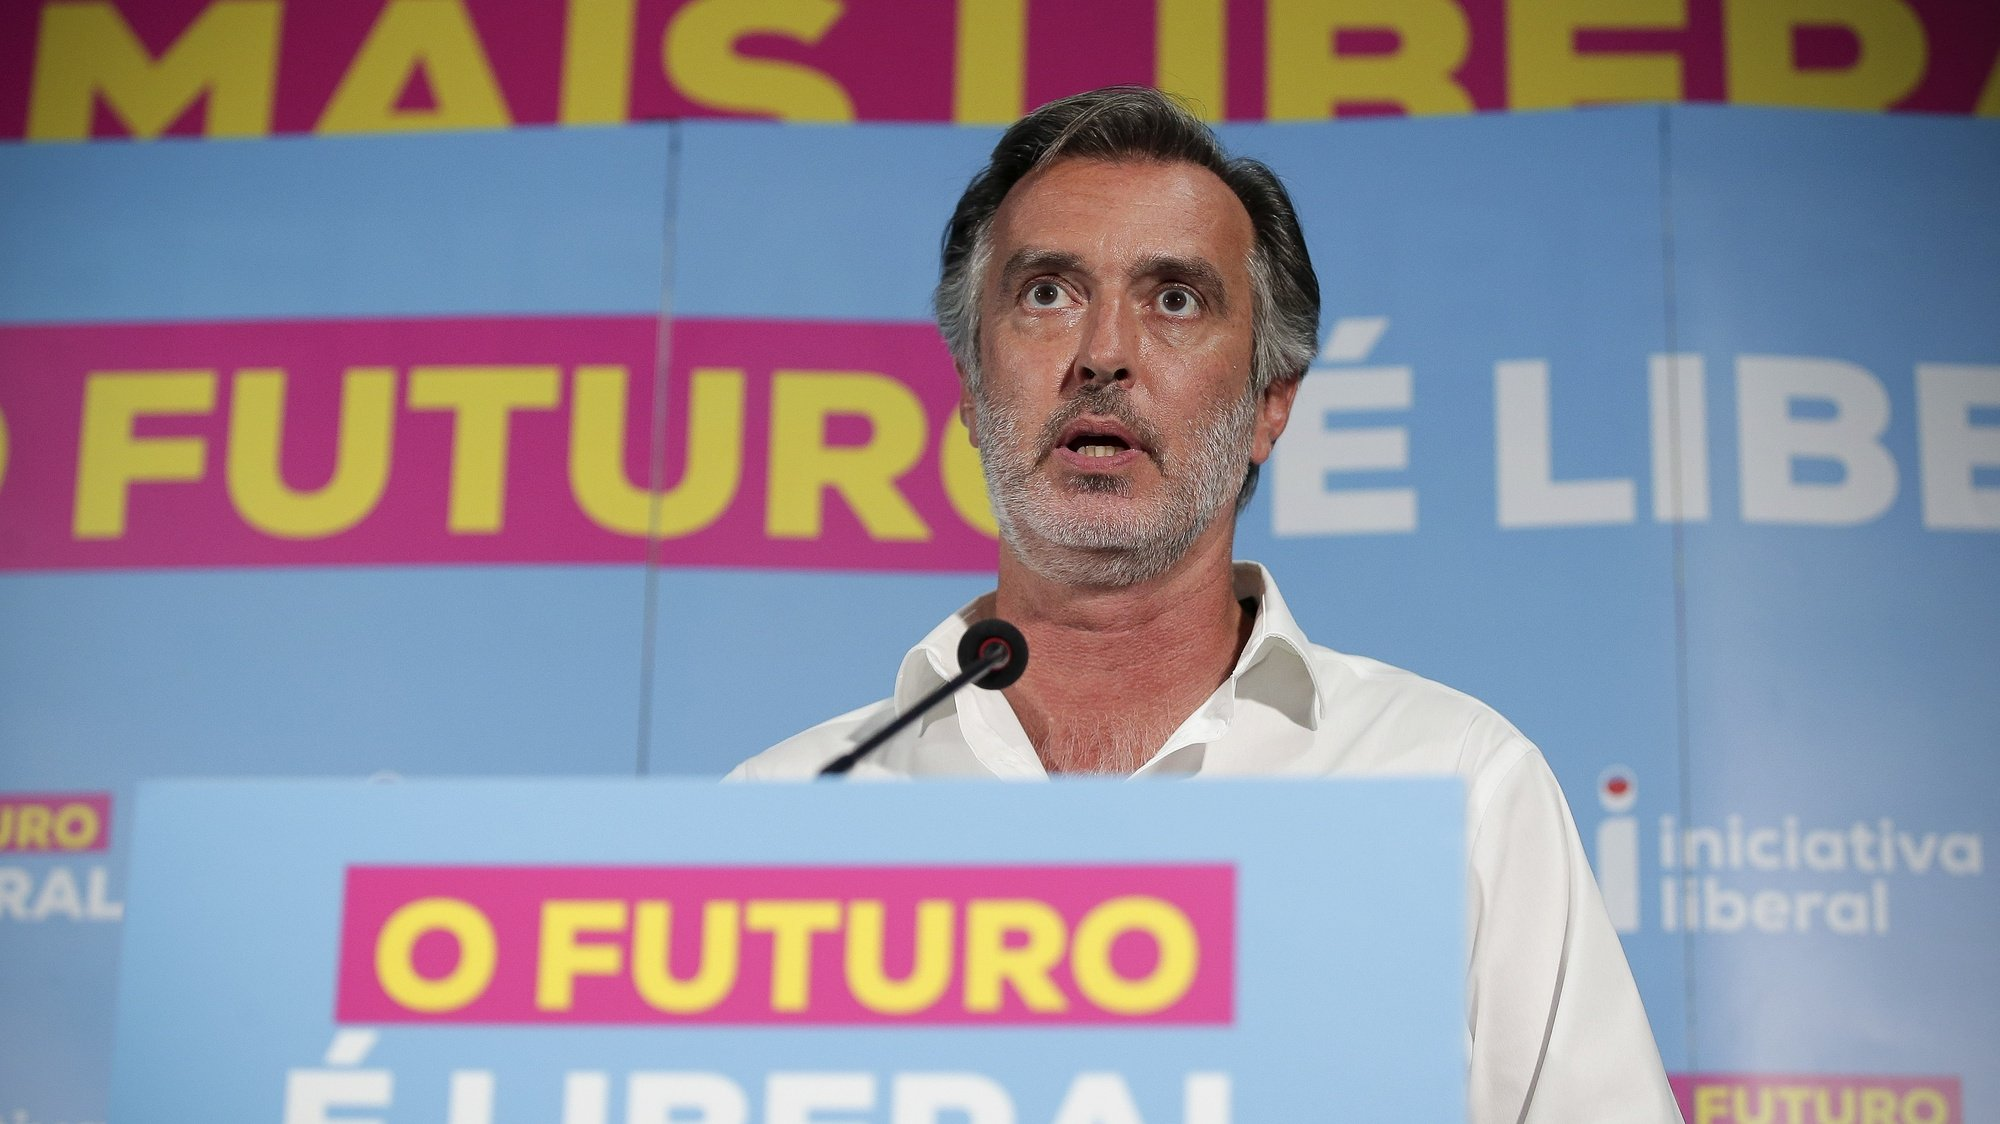 Liberal Initiative (IL) leader Joao Cotrim de Figueiredo reacts to the election of the independent candidate supported by the party to local elections, Rui Moreira, at the Liberal Initiative party headquarters, in Porto, 27 September 2021. Today more than 9.3 million voters can vote in local elections to elect their local representatives in Portugal. MANUEL FERNANDO ARAUJO/LUSA